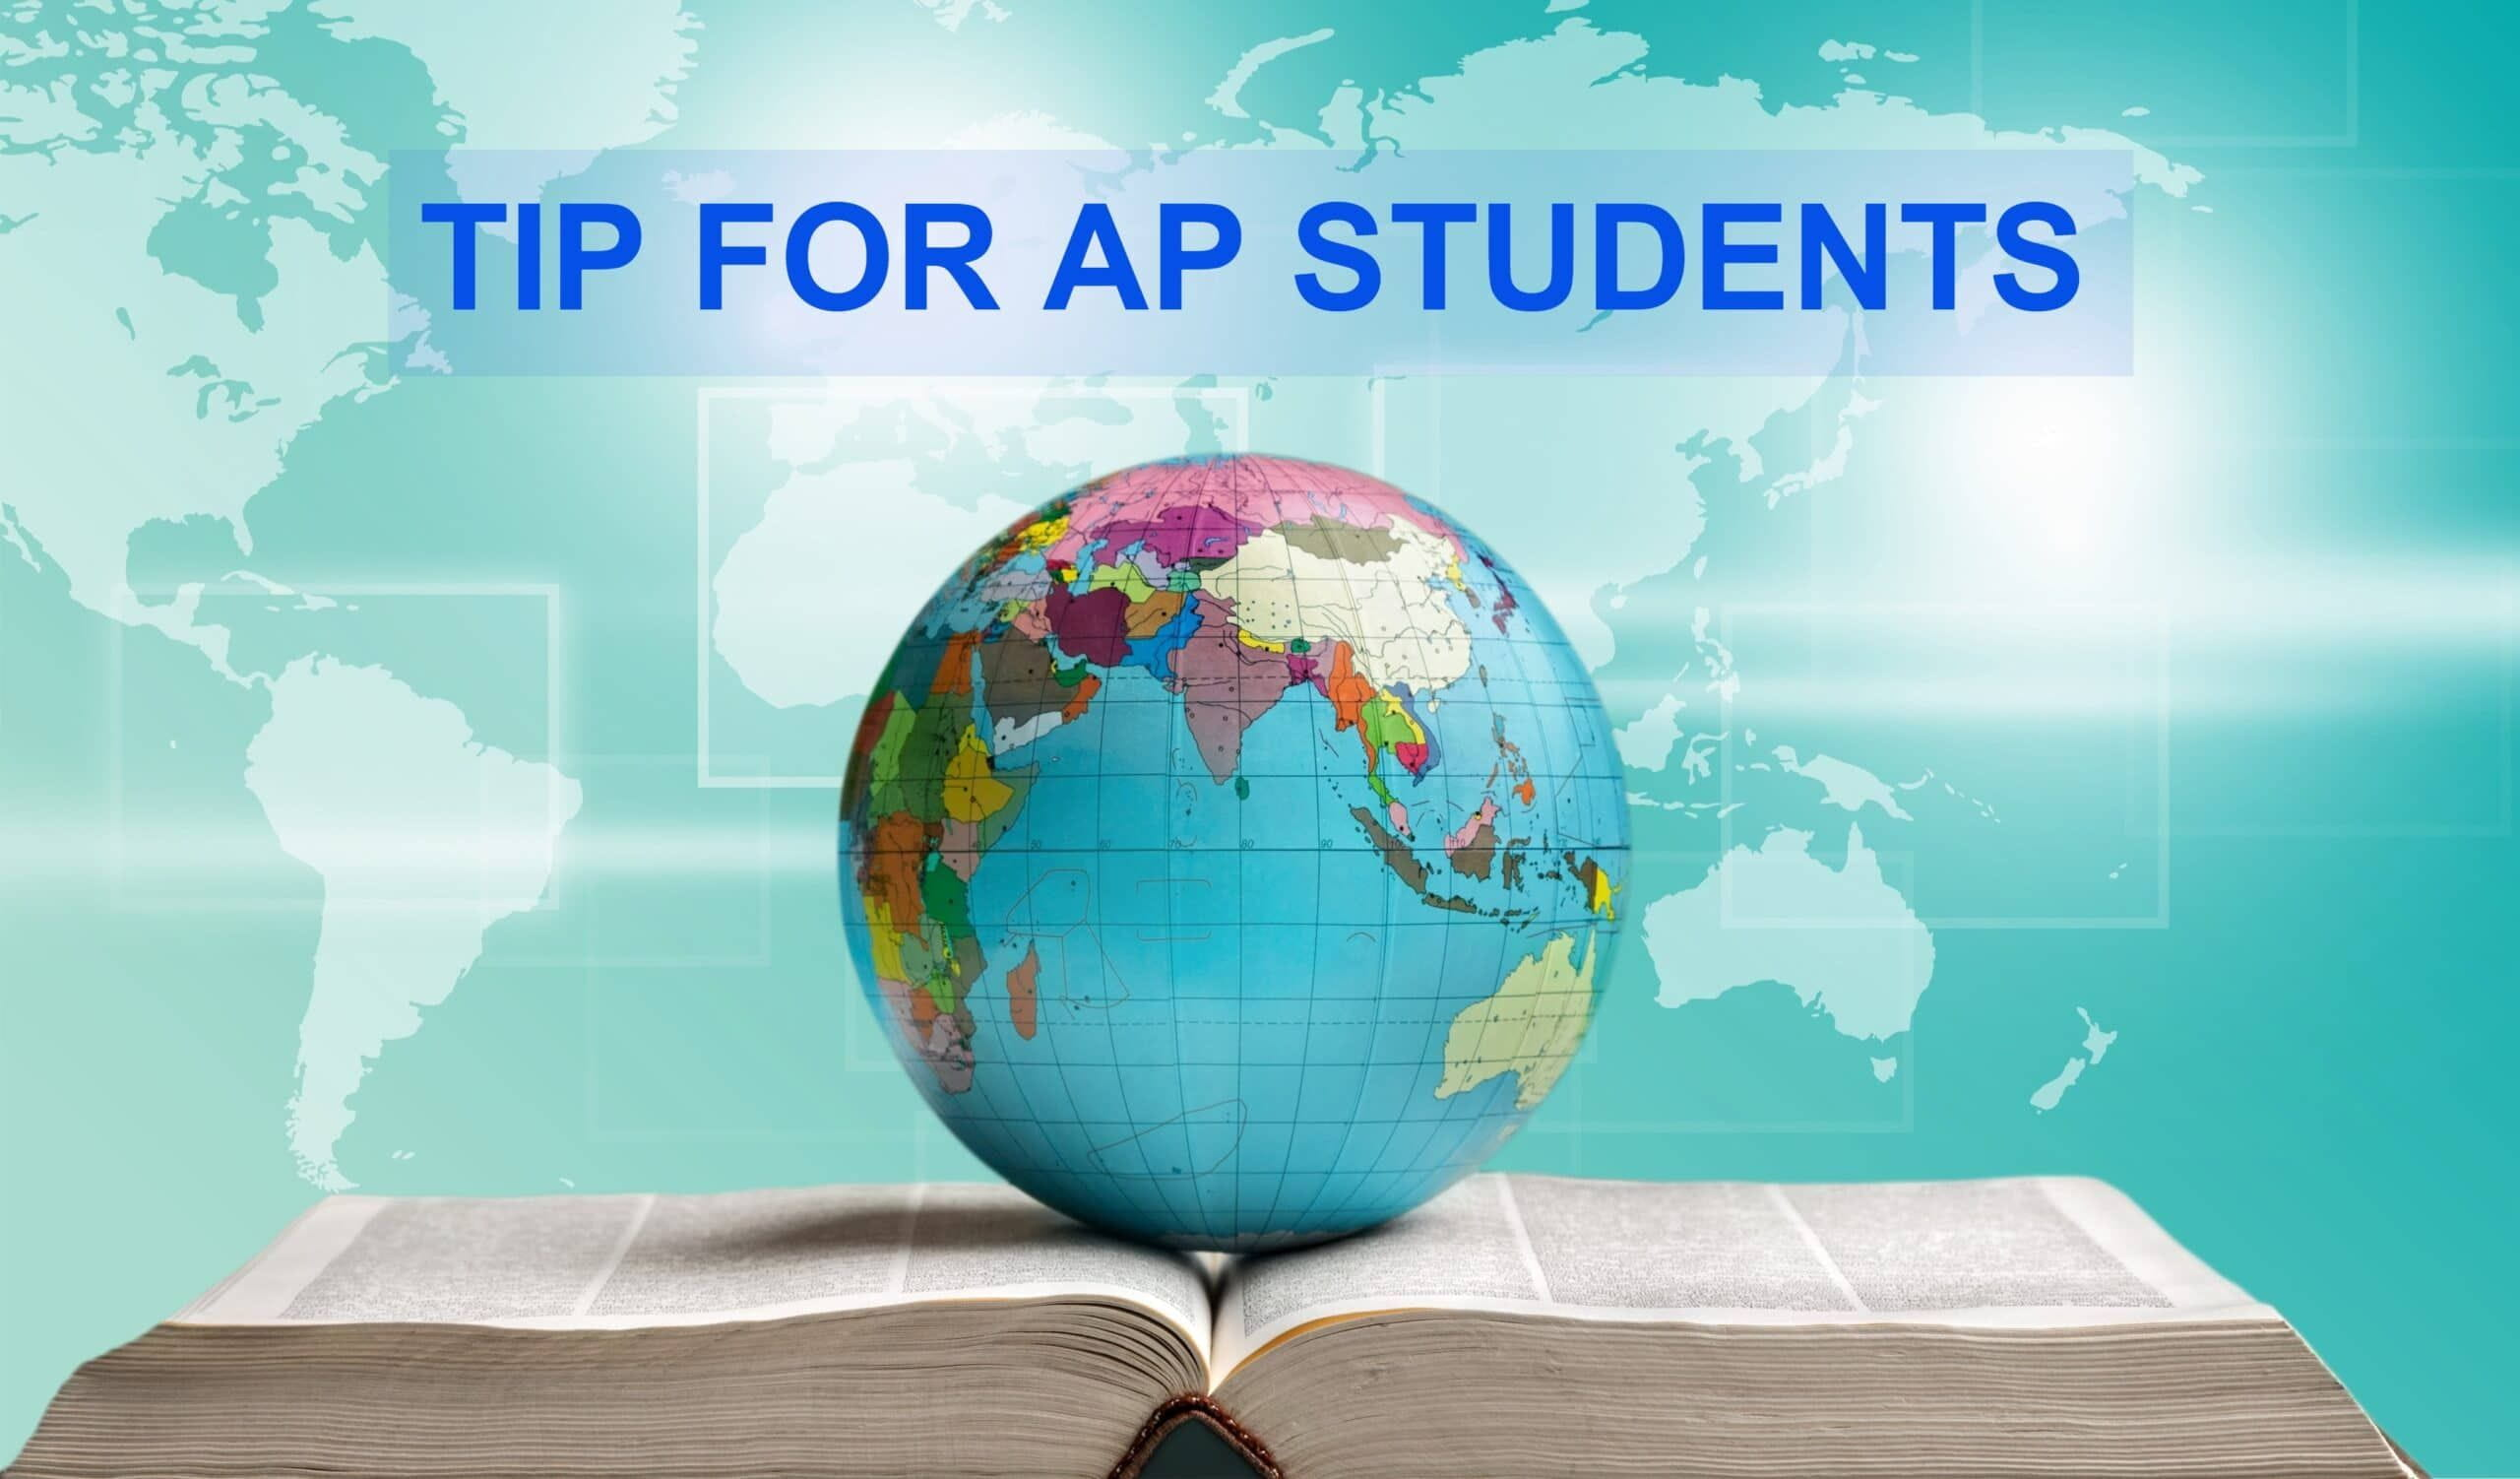 TIPS FOR AP STUDENTS WITH HACK YOUR COURSE AP AND IB TUTORING SERVICE